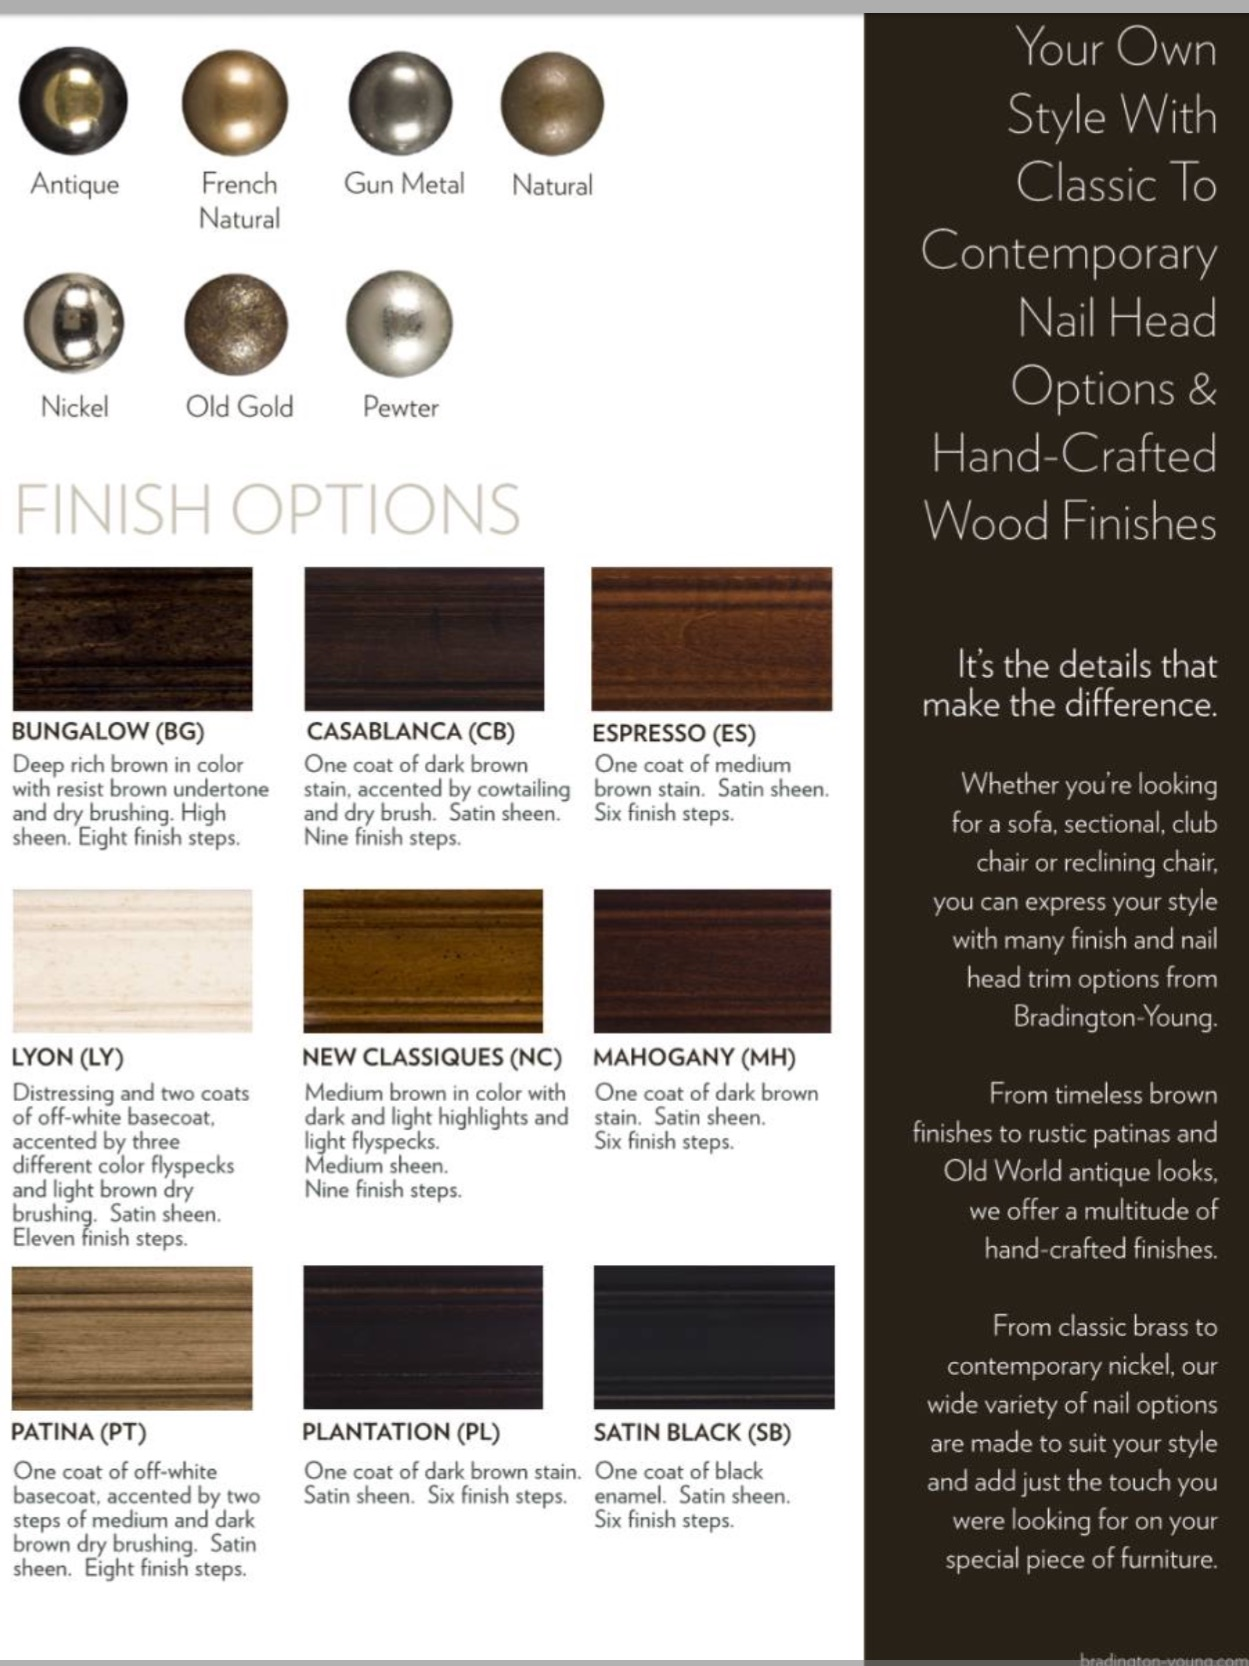 Bradington Young Leather Nail Head and Finish Options